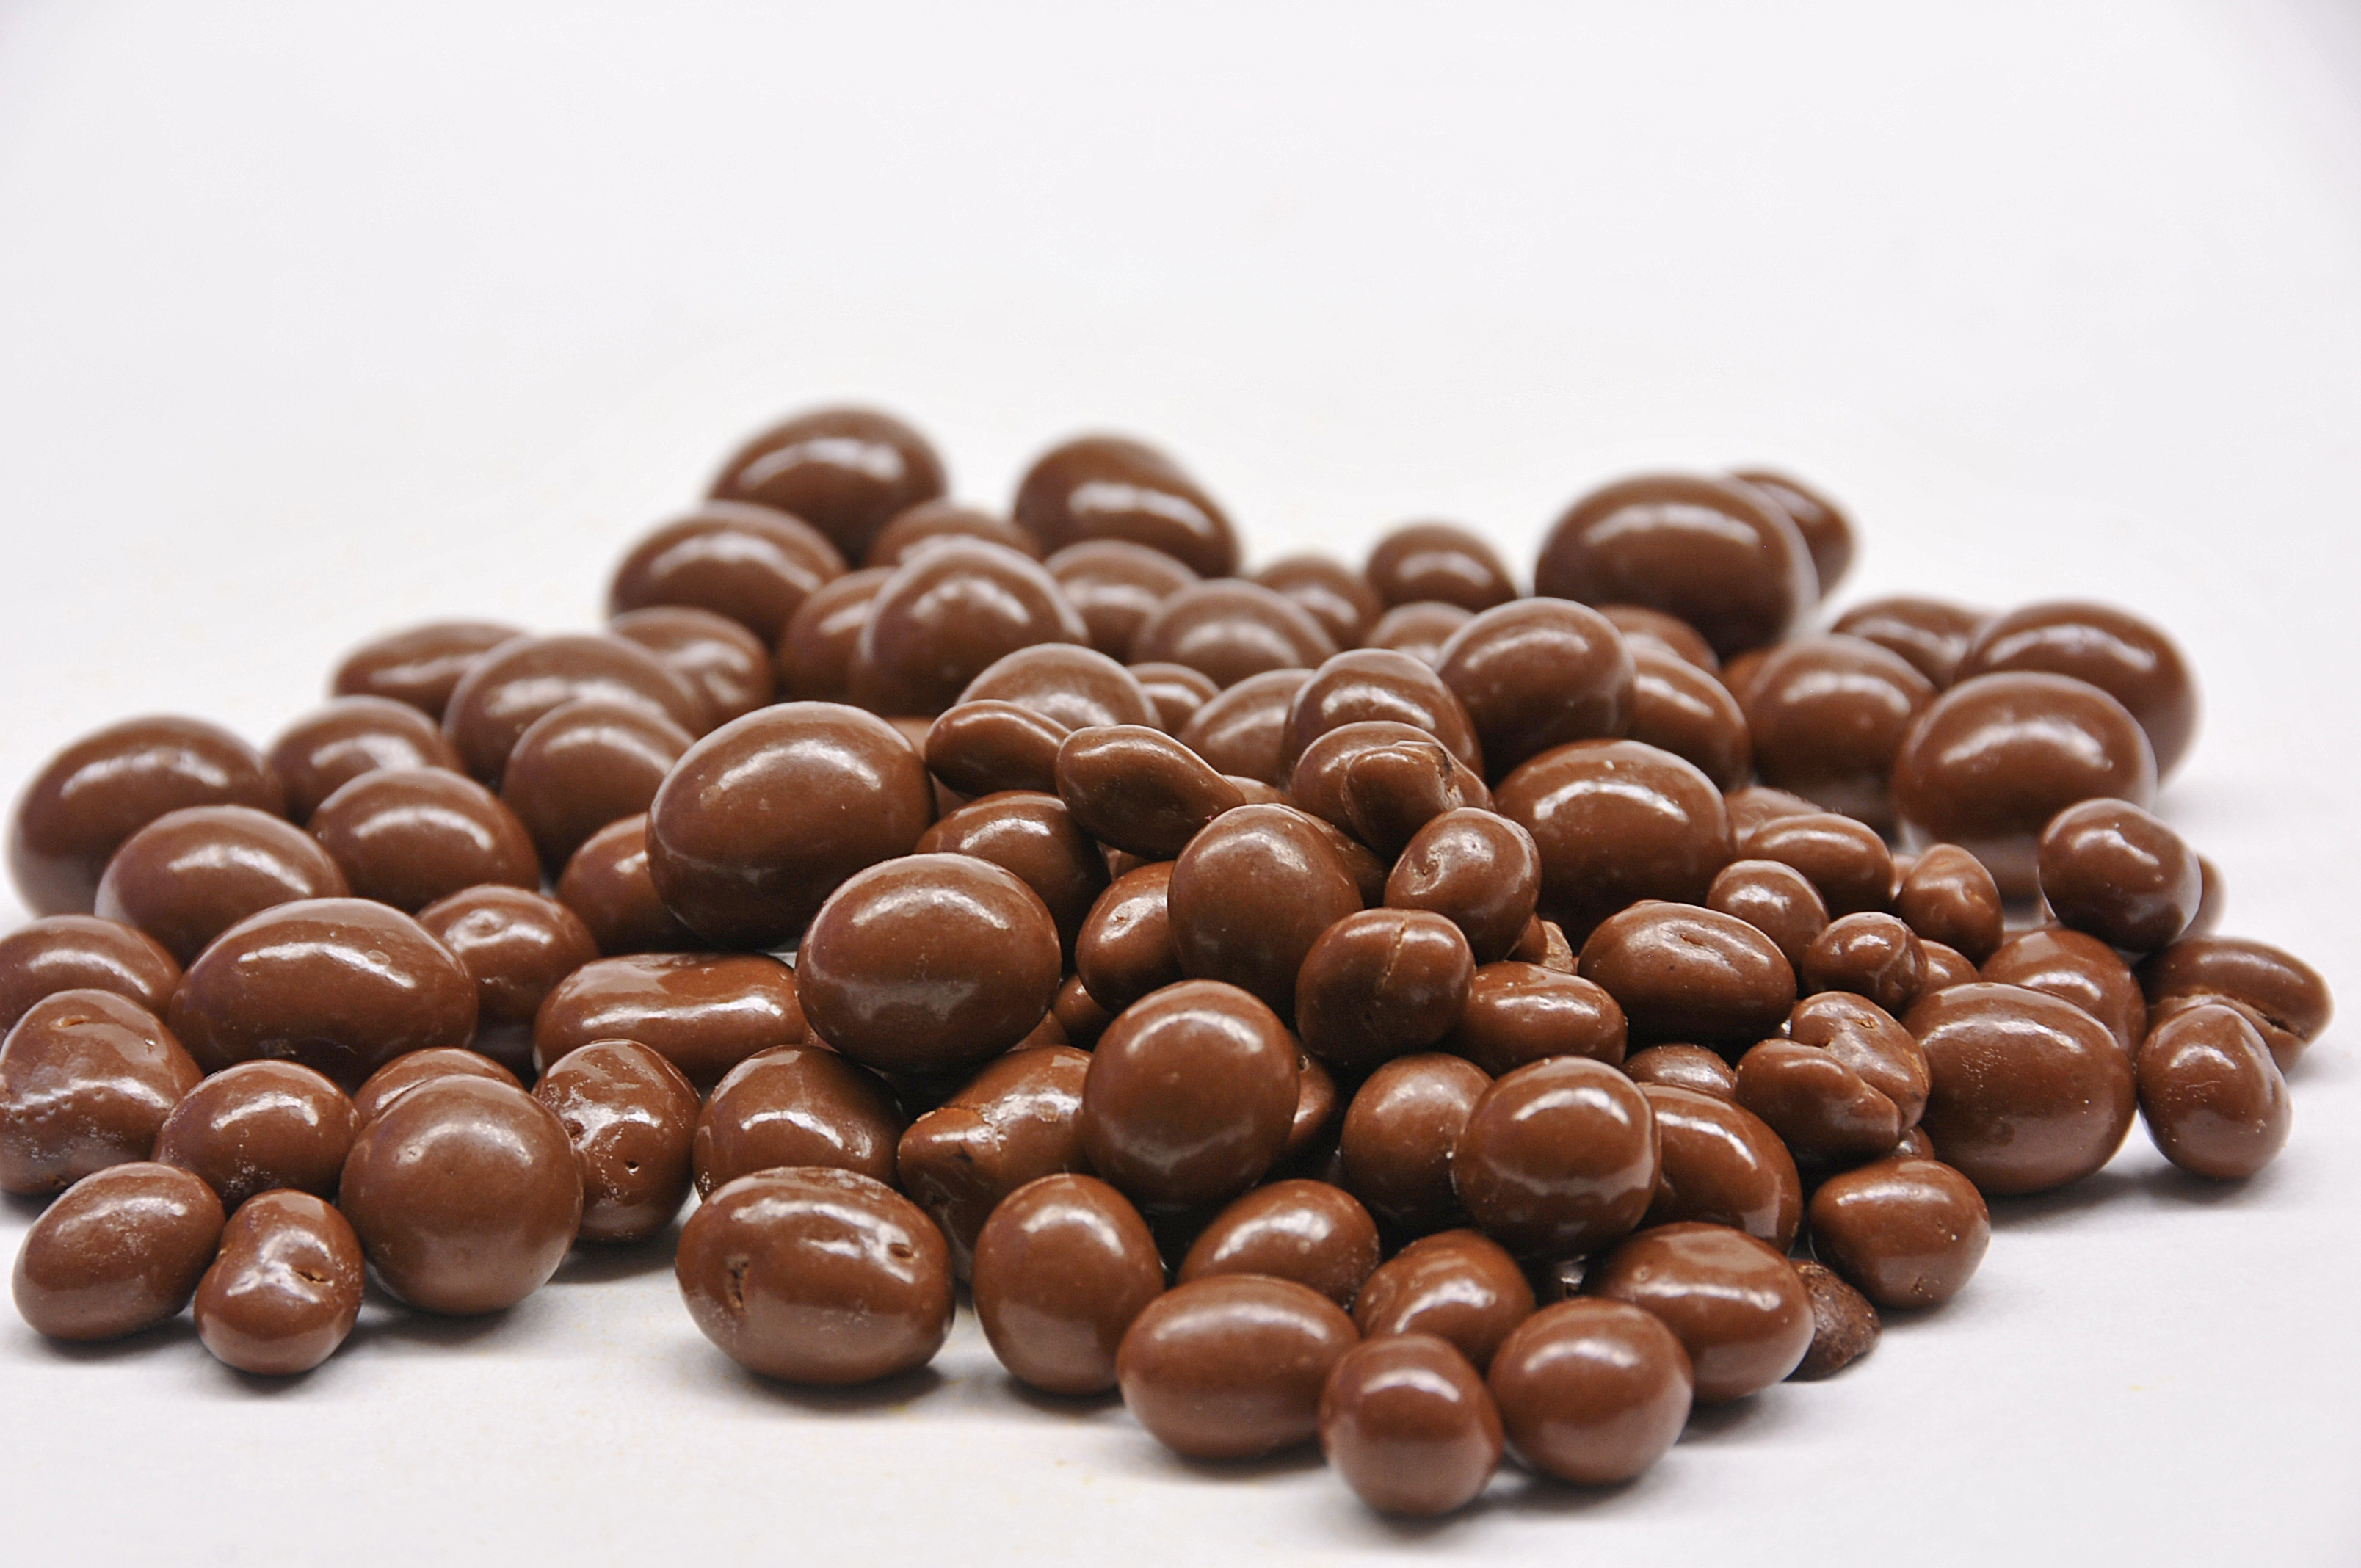 Milk Chocolate Covered Raisins - Taste of Amish